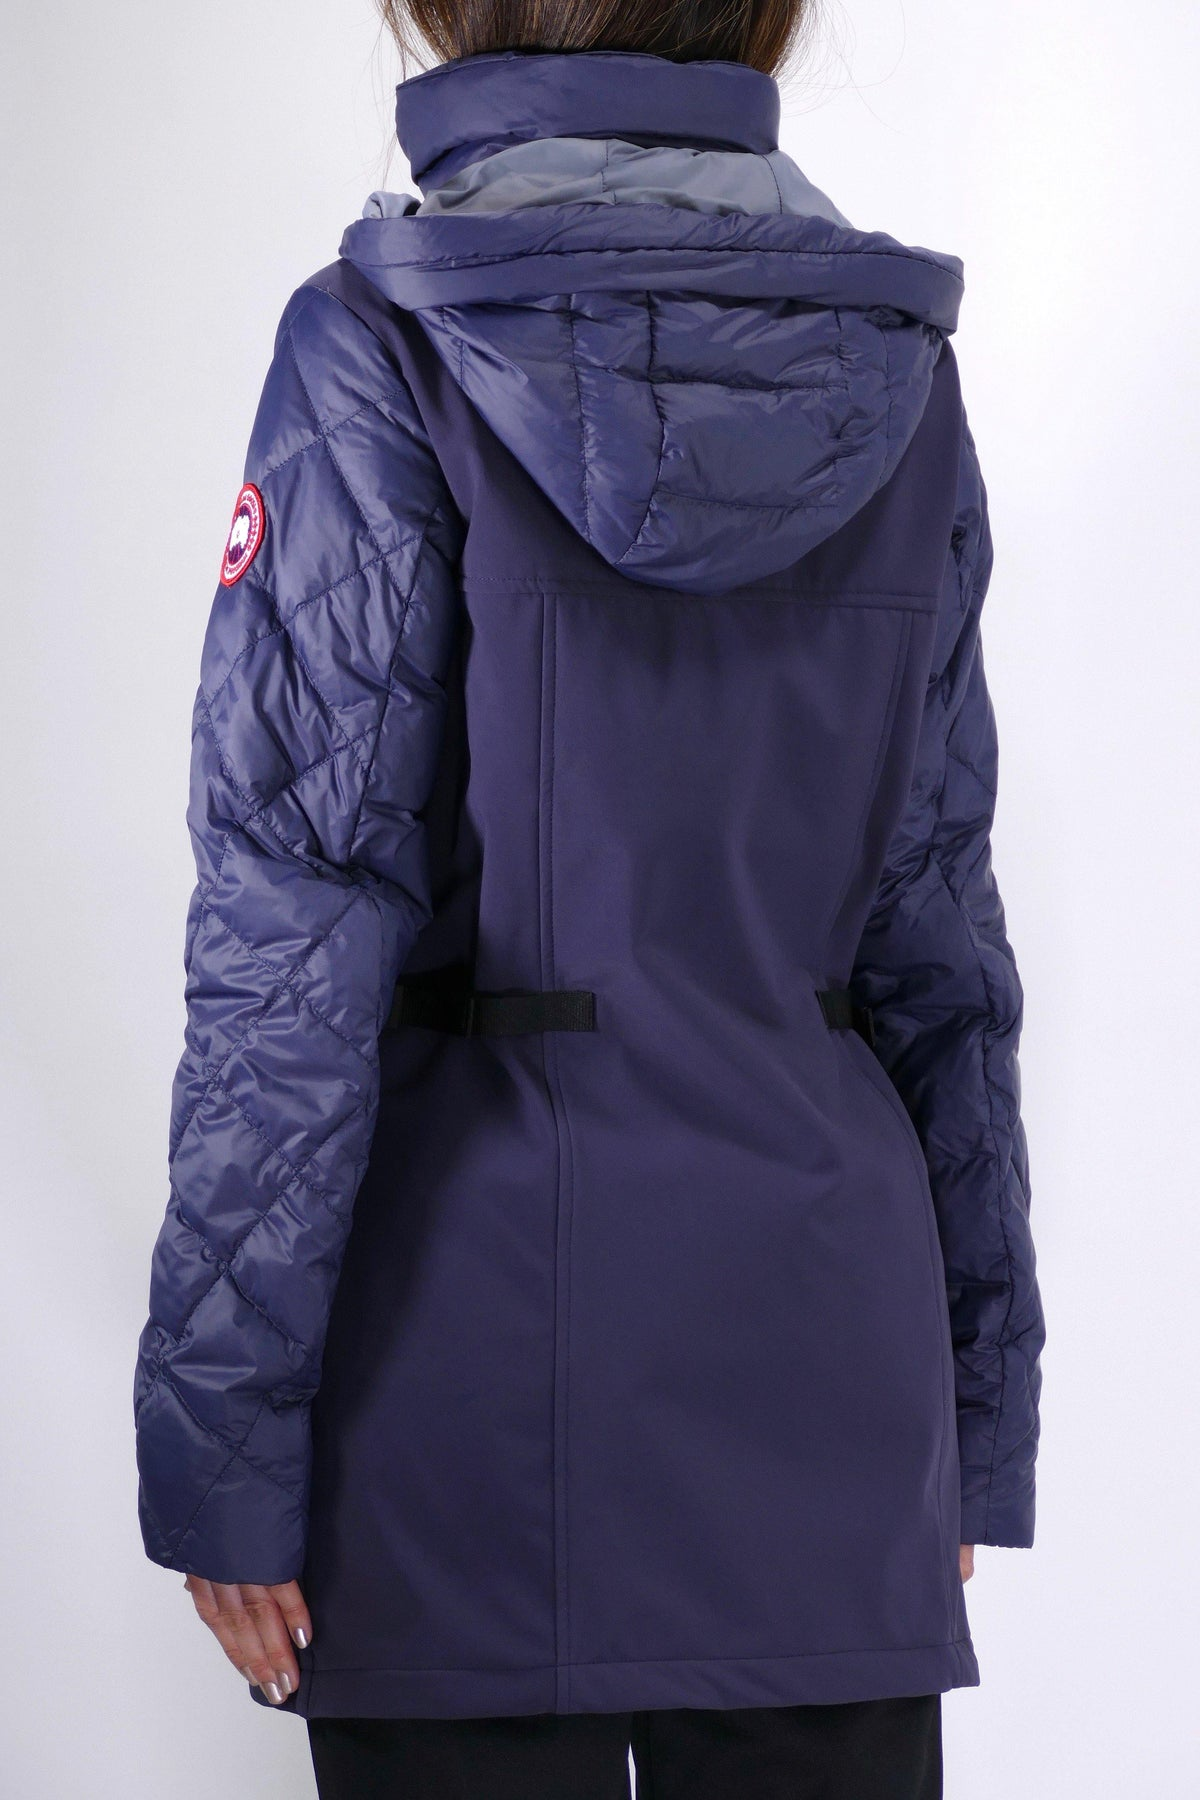 Canada Goose Womens Jacket Coat Berkley - Navy